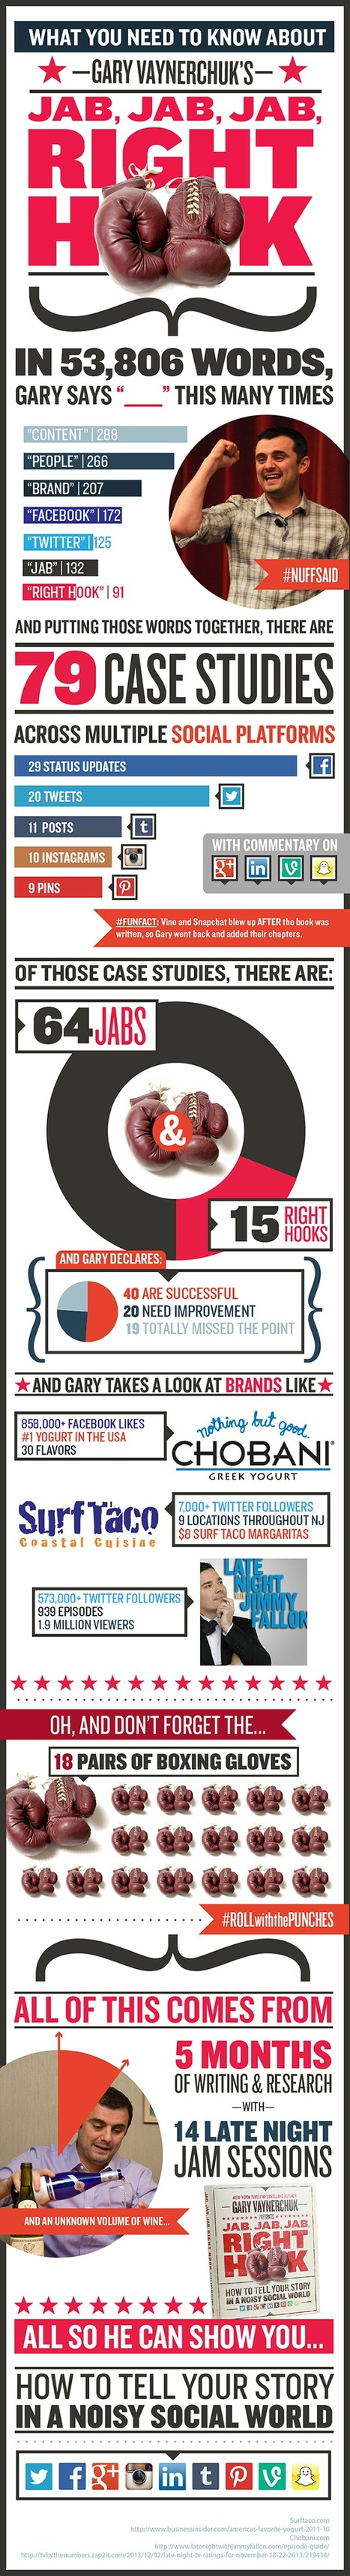 What You Need to Know About Jab, Jab, Jab, Right Hook by Gary Vaynerchuk [Infographic] | Google Plus and Social SEO | Scoop.it